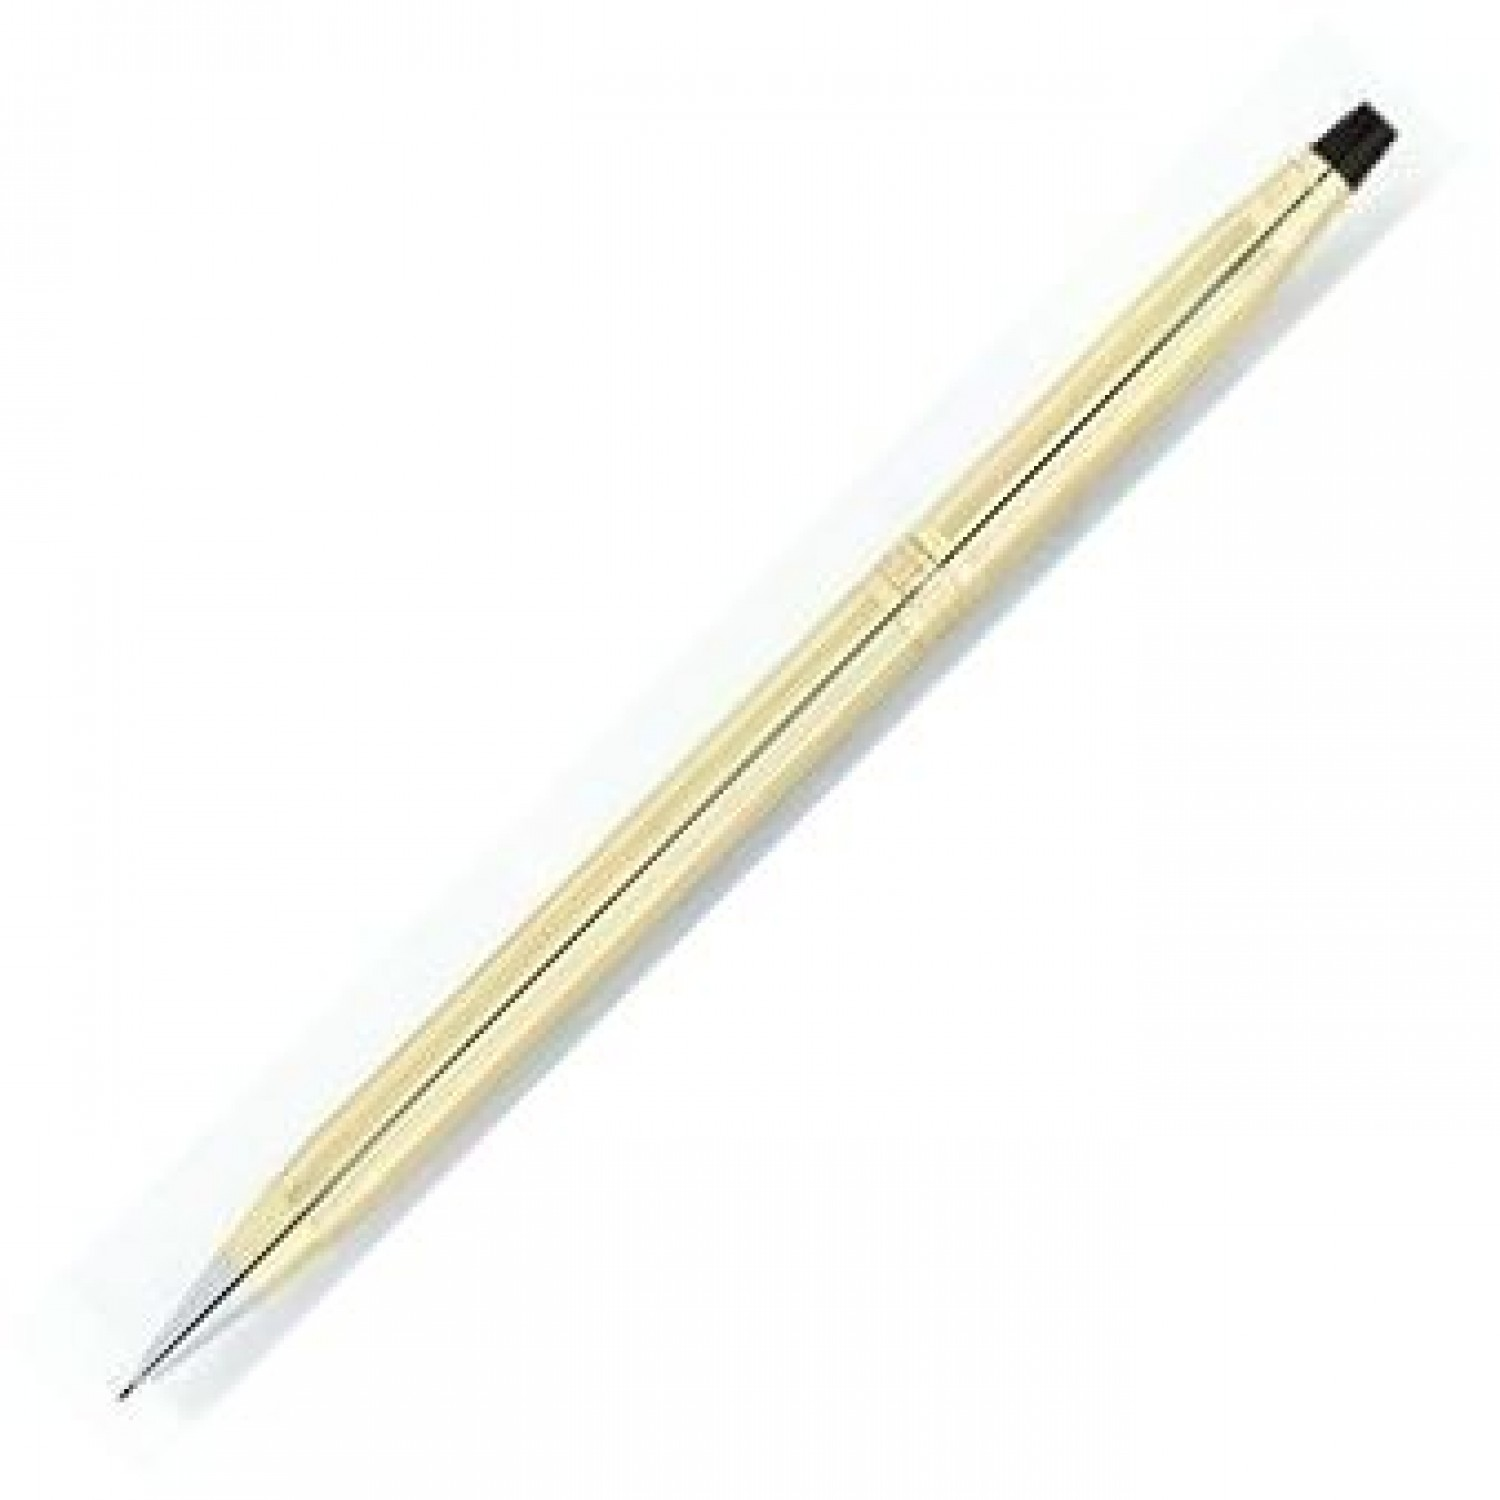 AT Cross Classic Century 10 Karat Gold Filled/Rolled Gold 0.5MM Pencil